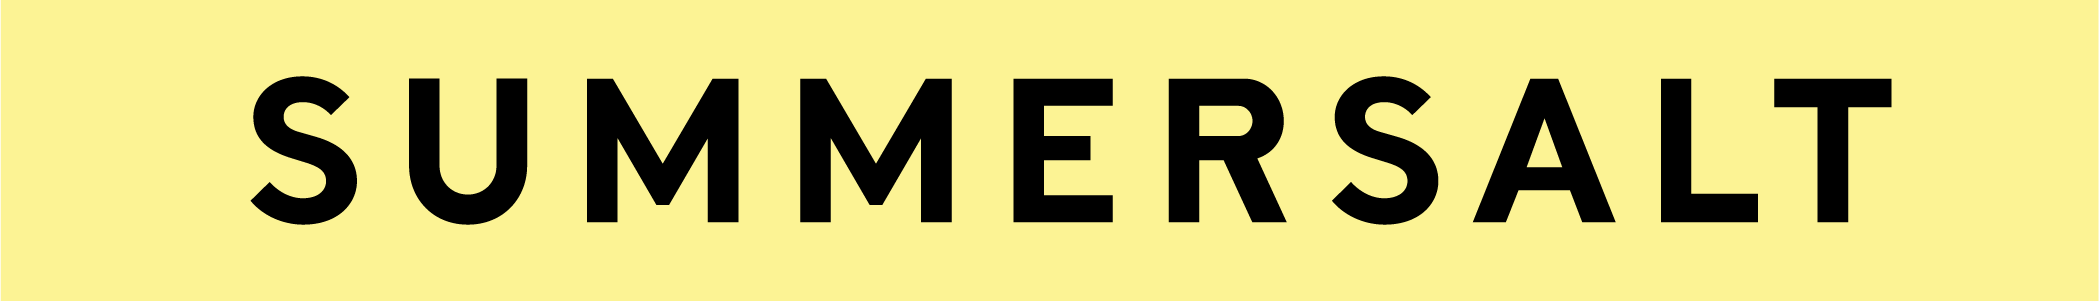 SUM_Wordmark_Yellow_Rollover.png